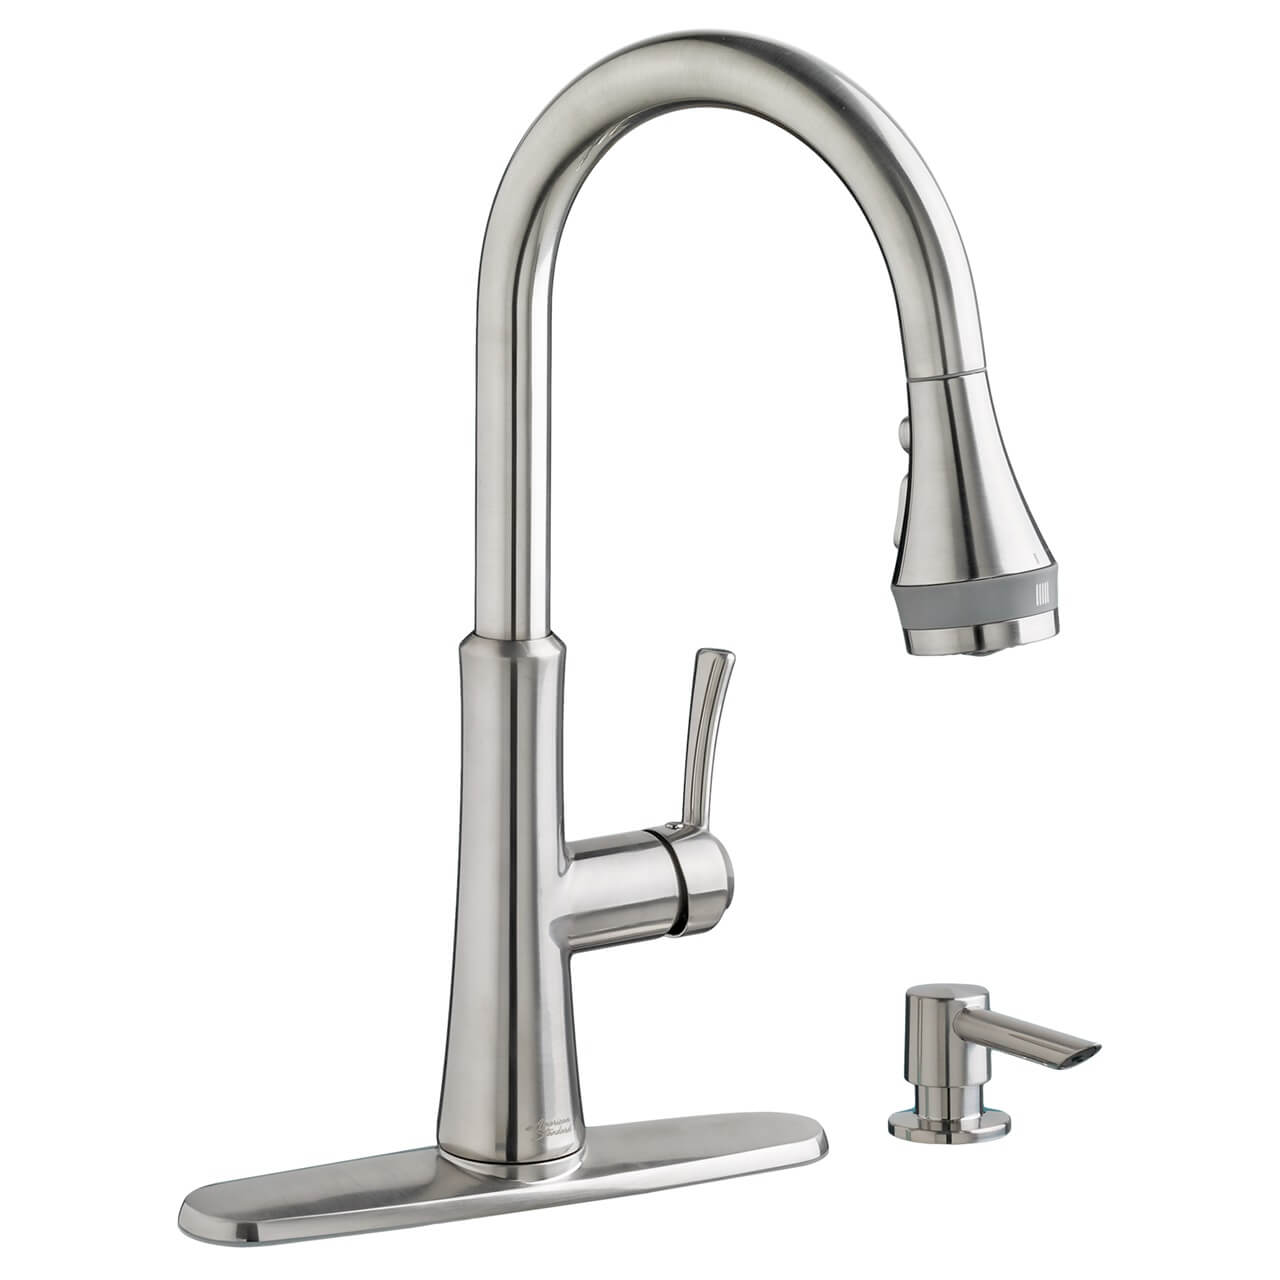 american standard kitchen faucet redoing cabinets huntley pull down with